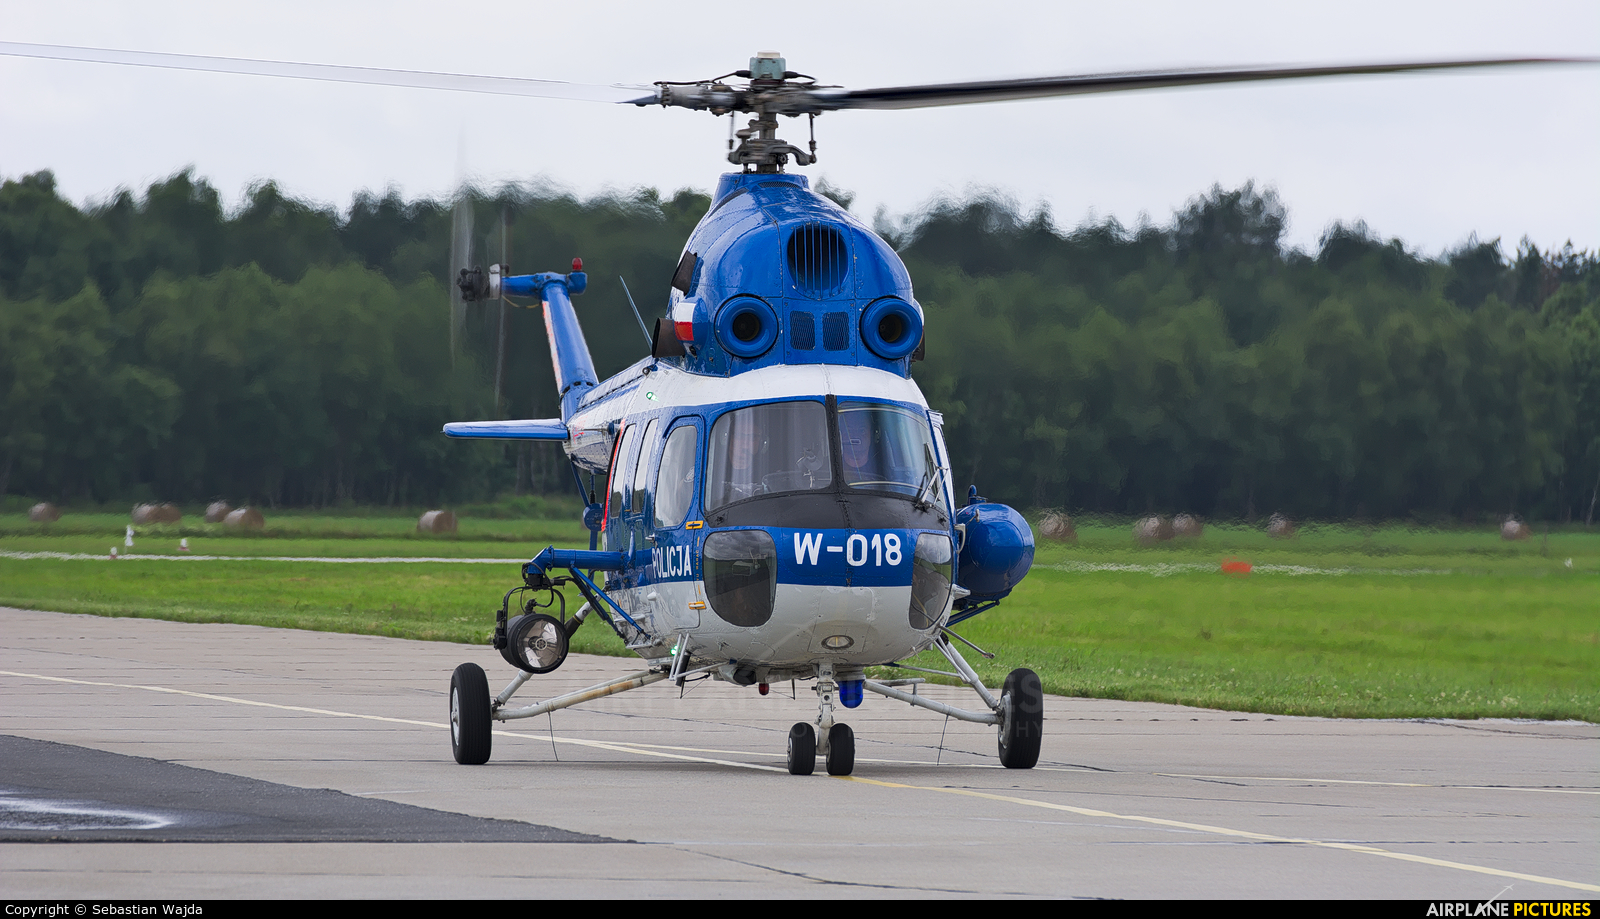 Poland - Police SN-05XP aircraft at Świdwin